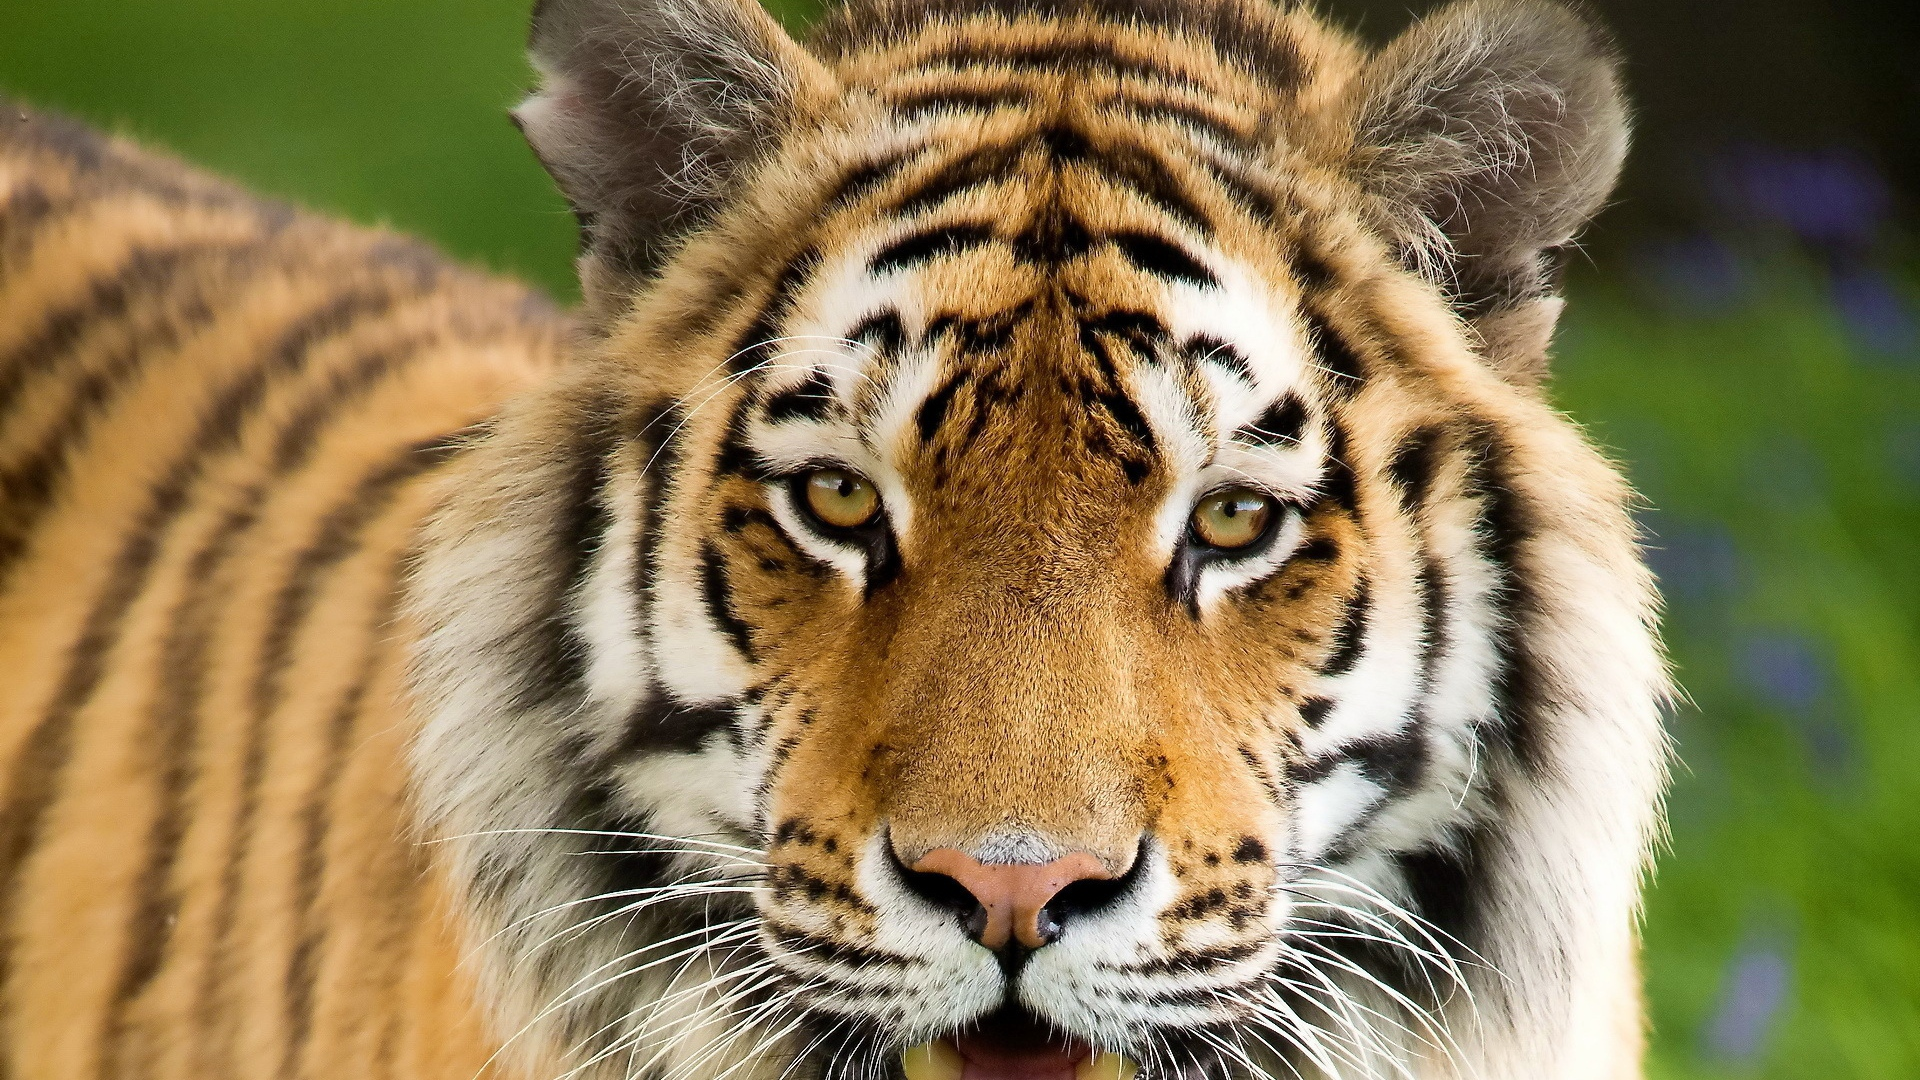 Download Wallpaper 1920x1080 Tiger, Aggression, Face